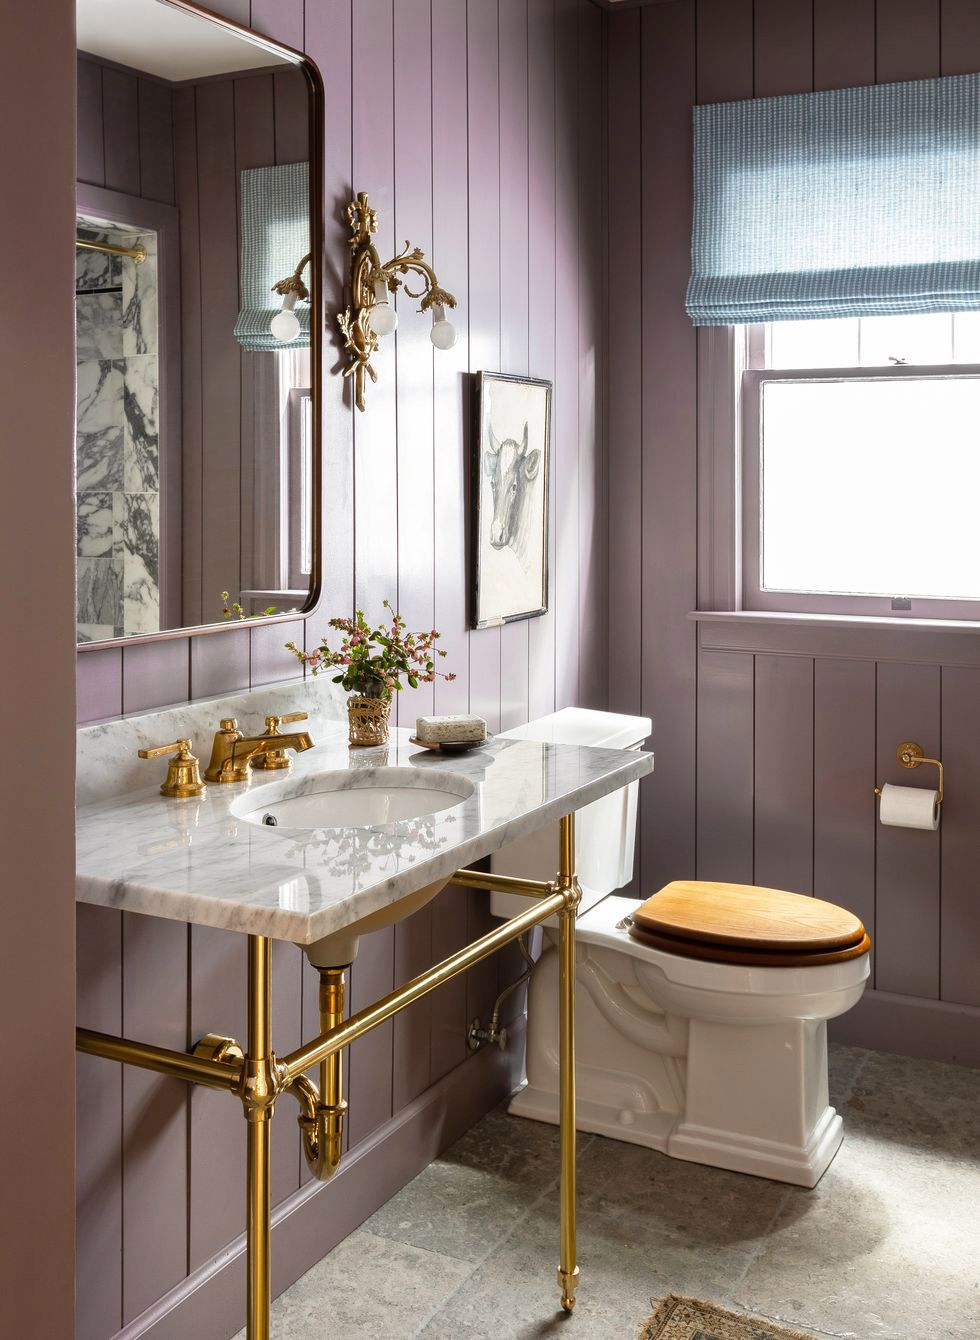 10 Small Bathroom Design Ideas - Small Bathroom Solutions